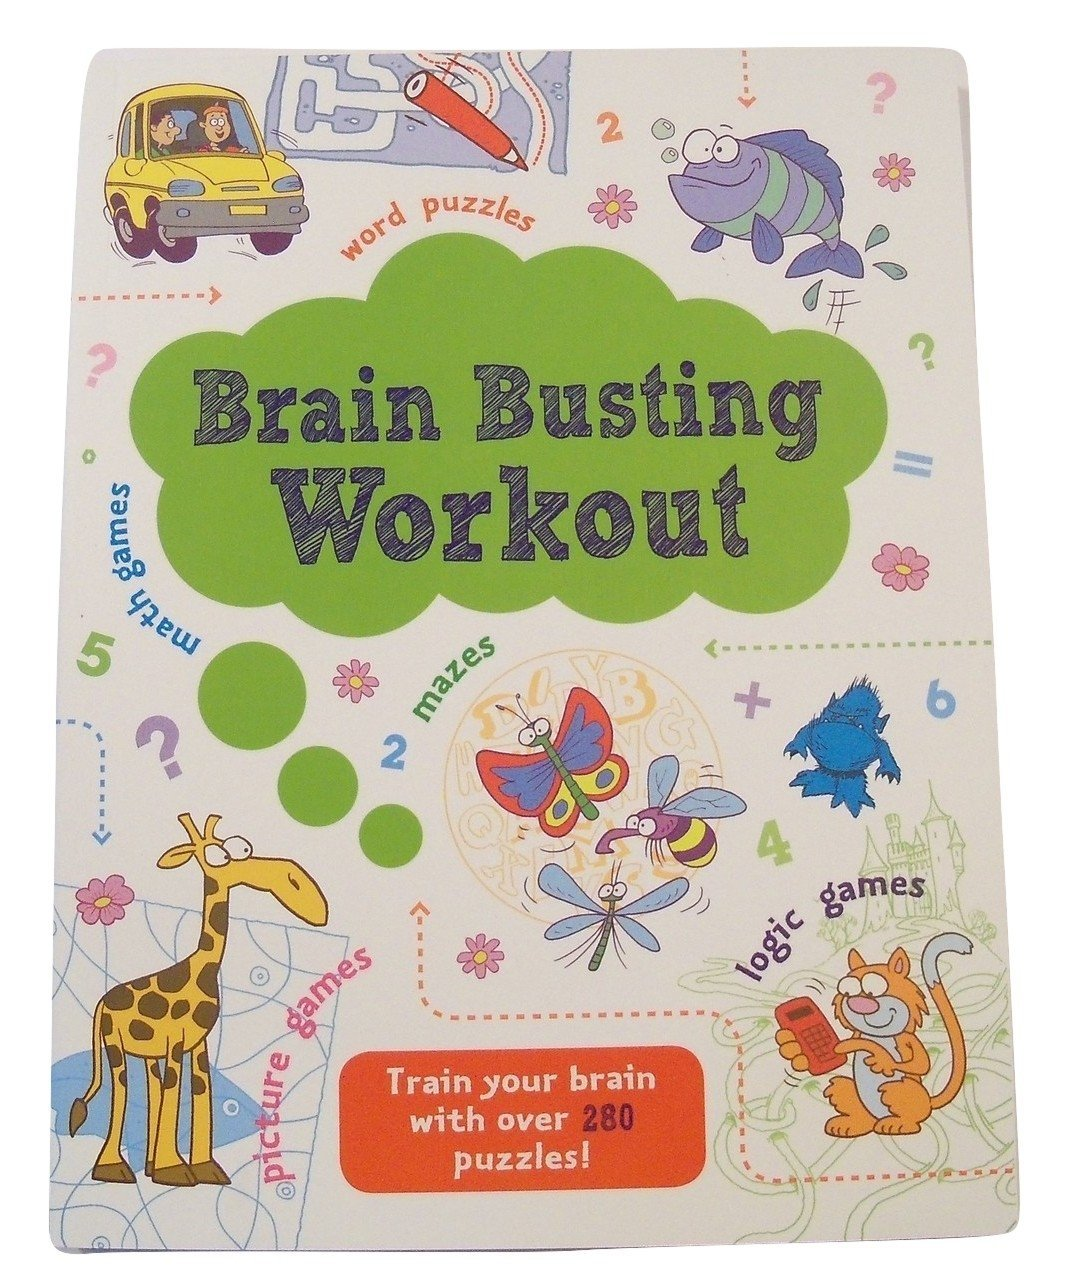 Brain Busting Workout Educational Activity Book ~ 288 Mazes, Word Puzzles, and Math, Logic and Picture Games (2014)